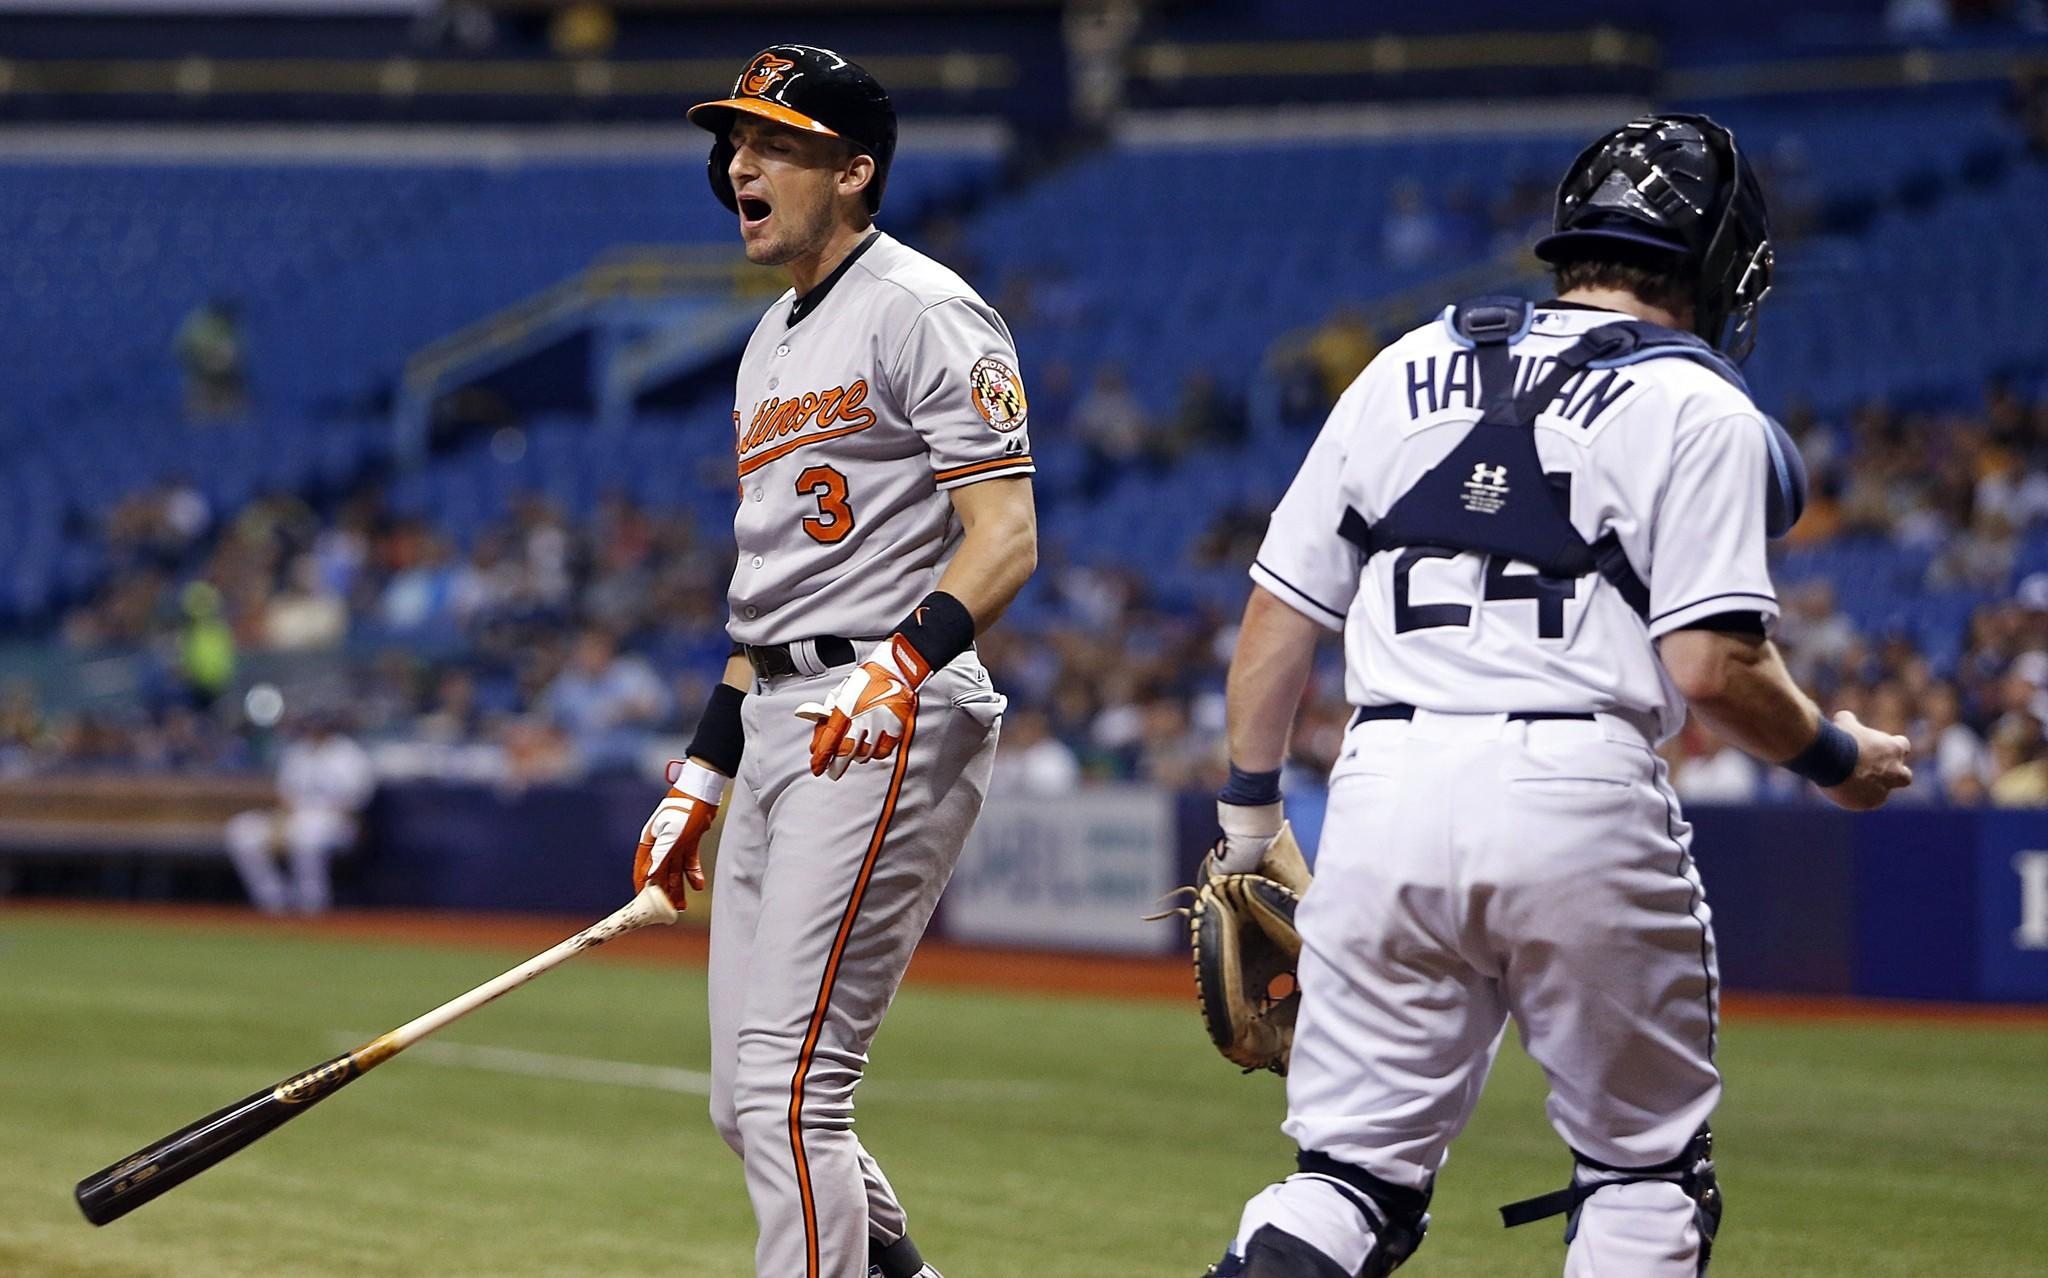 Orioles infielder Ryan Flaherty reacts as he strikes out swinging in front of catcher Tampa Bay Rays catcher Ryan Hanigan with two men on base to end the top of the second inning at Tropicana Field in St. Petersburg, Fla.